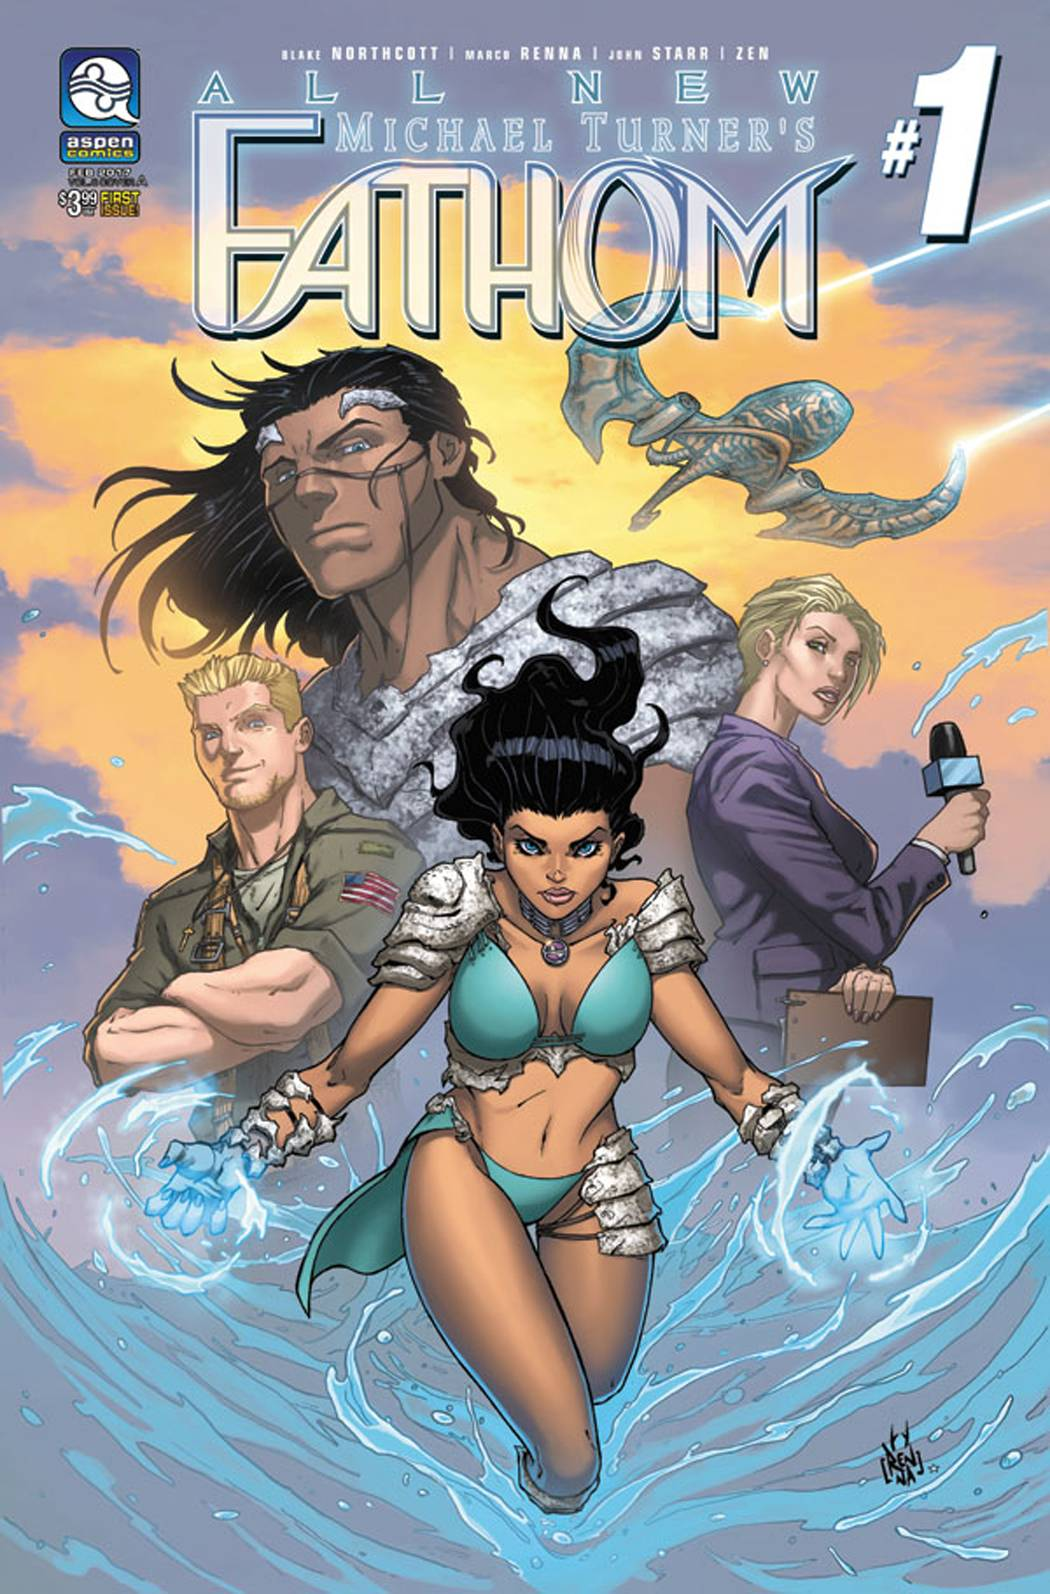 ALL NEW FATHOM #1 CVR A RENNA